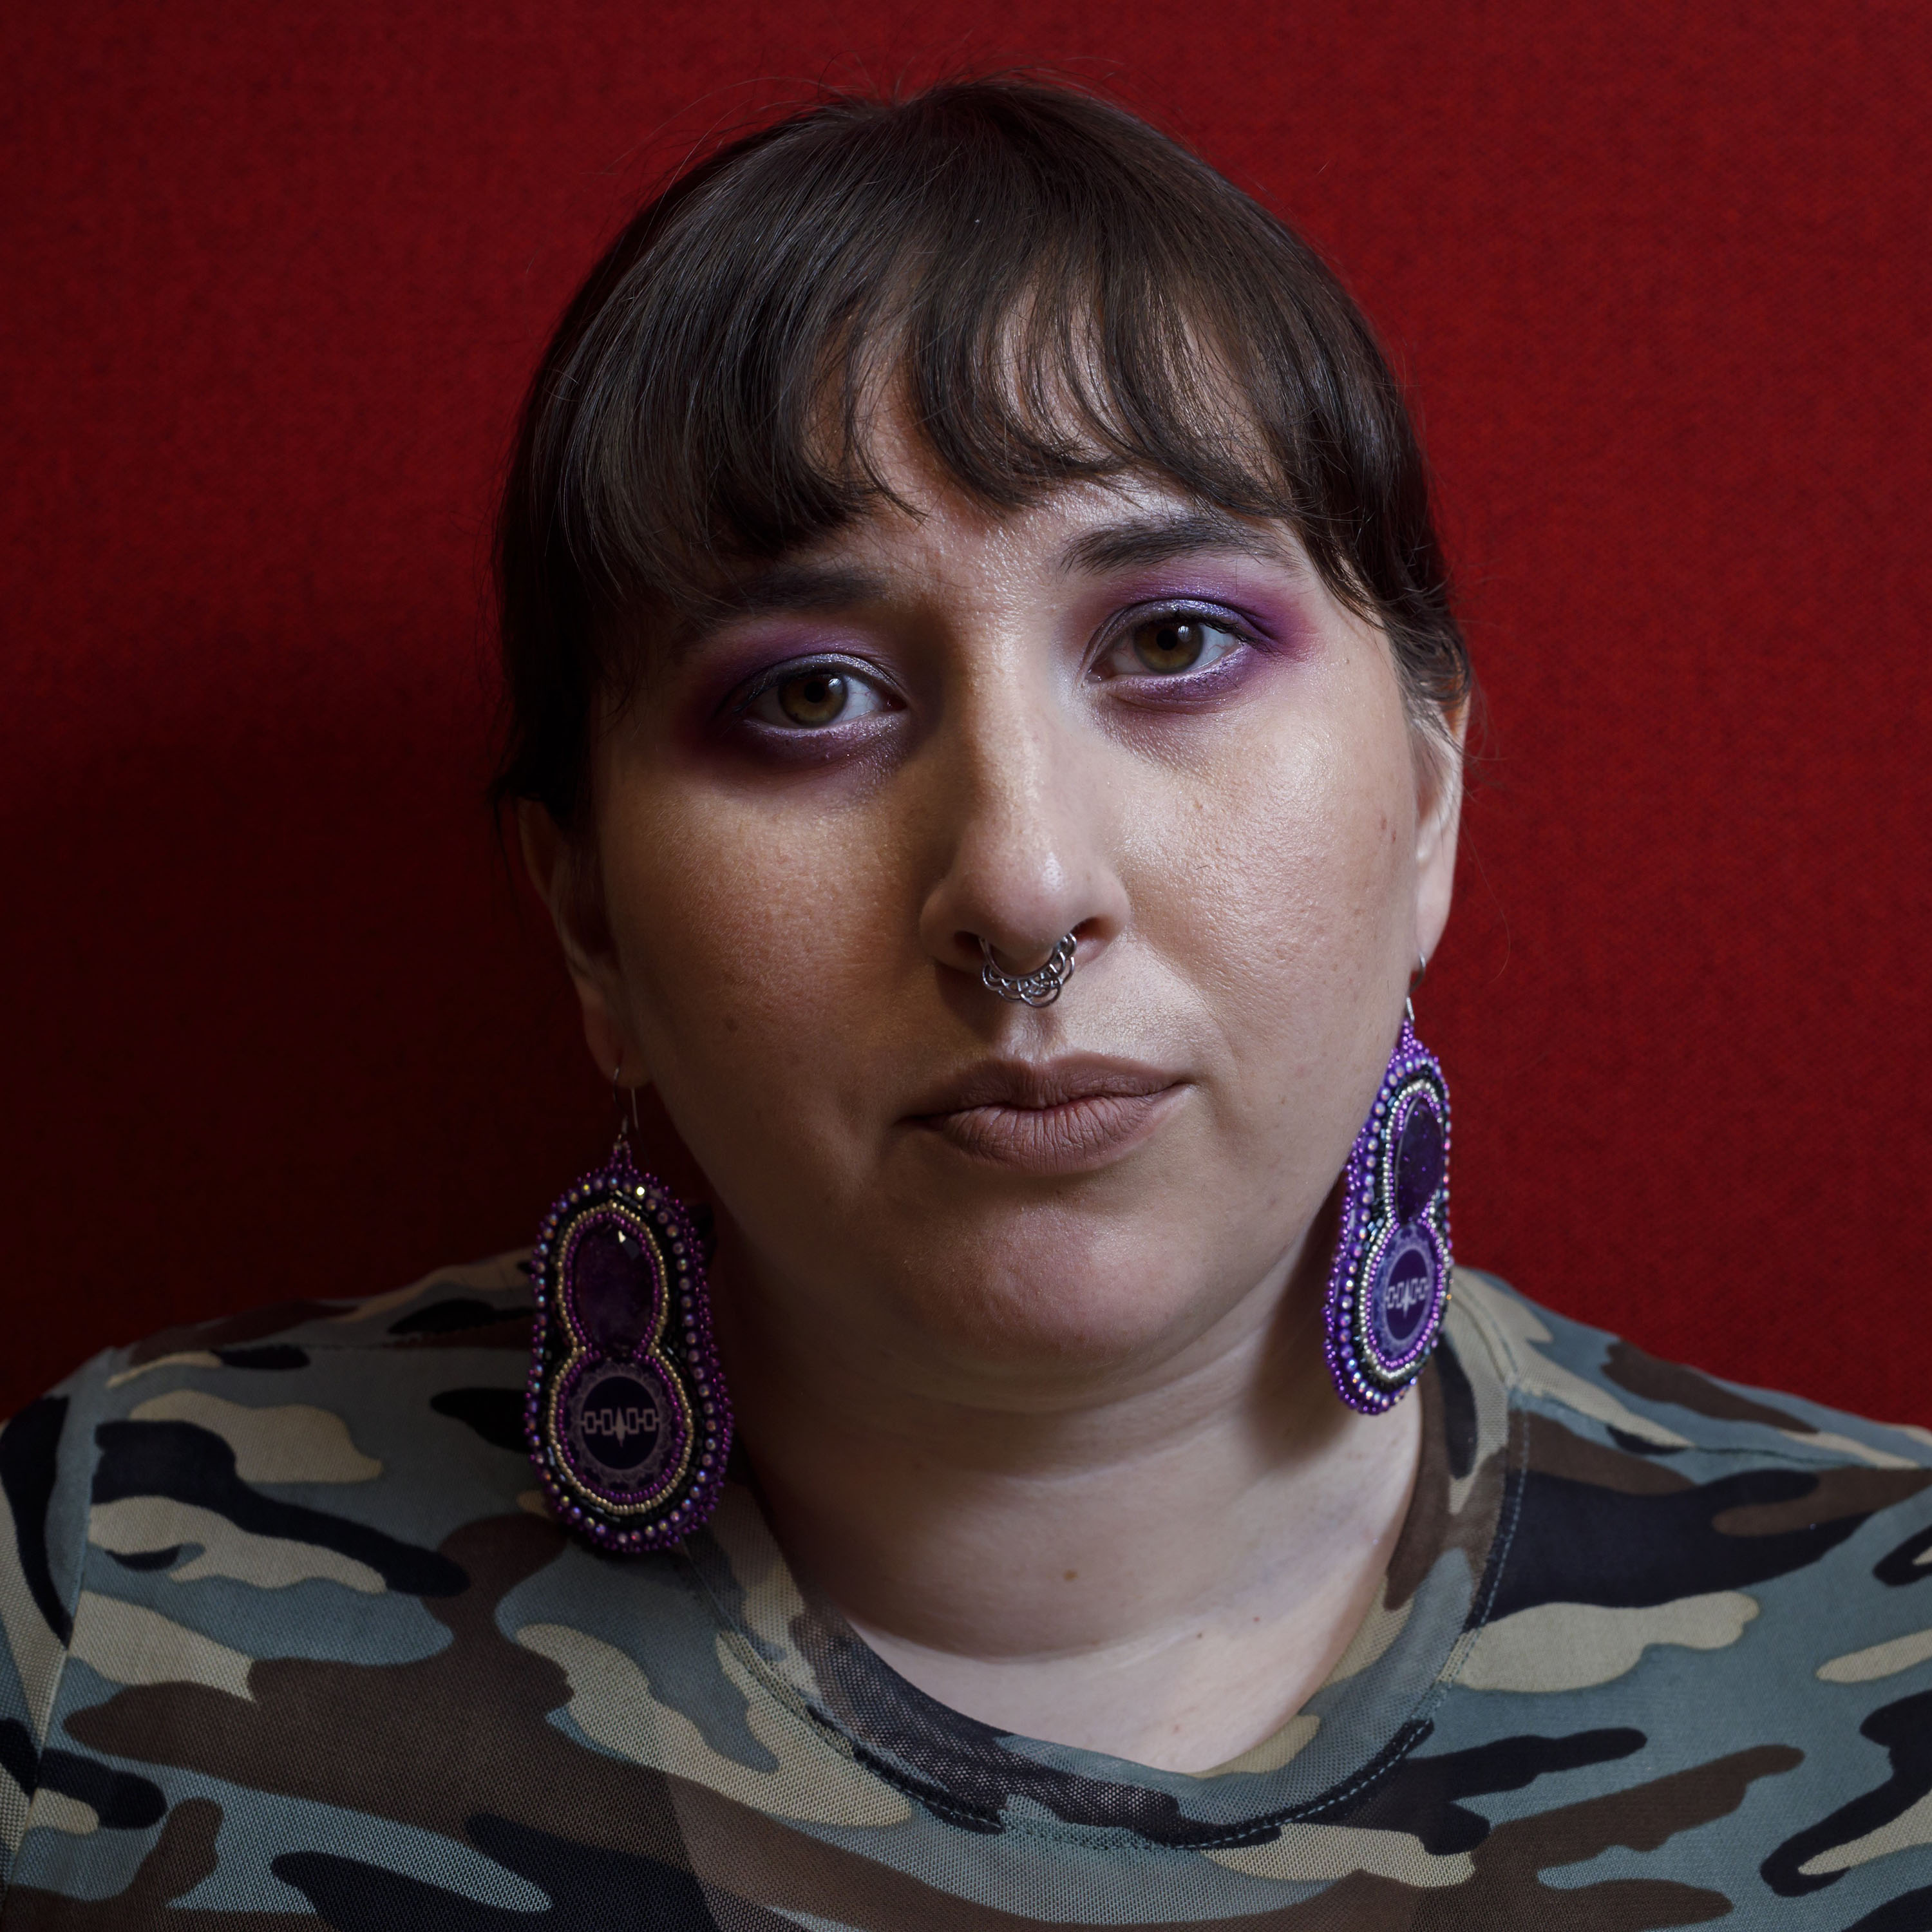 Haudenosaunee author Alicia Elliott poses for a portrait at the offices of Penguin Random House Canada, the publisher of her new book 'A Mind Spread Out on the Ground' in Toronto, Thursday, March 21, 2019. (Cole Burston/CP)